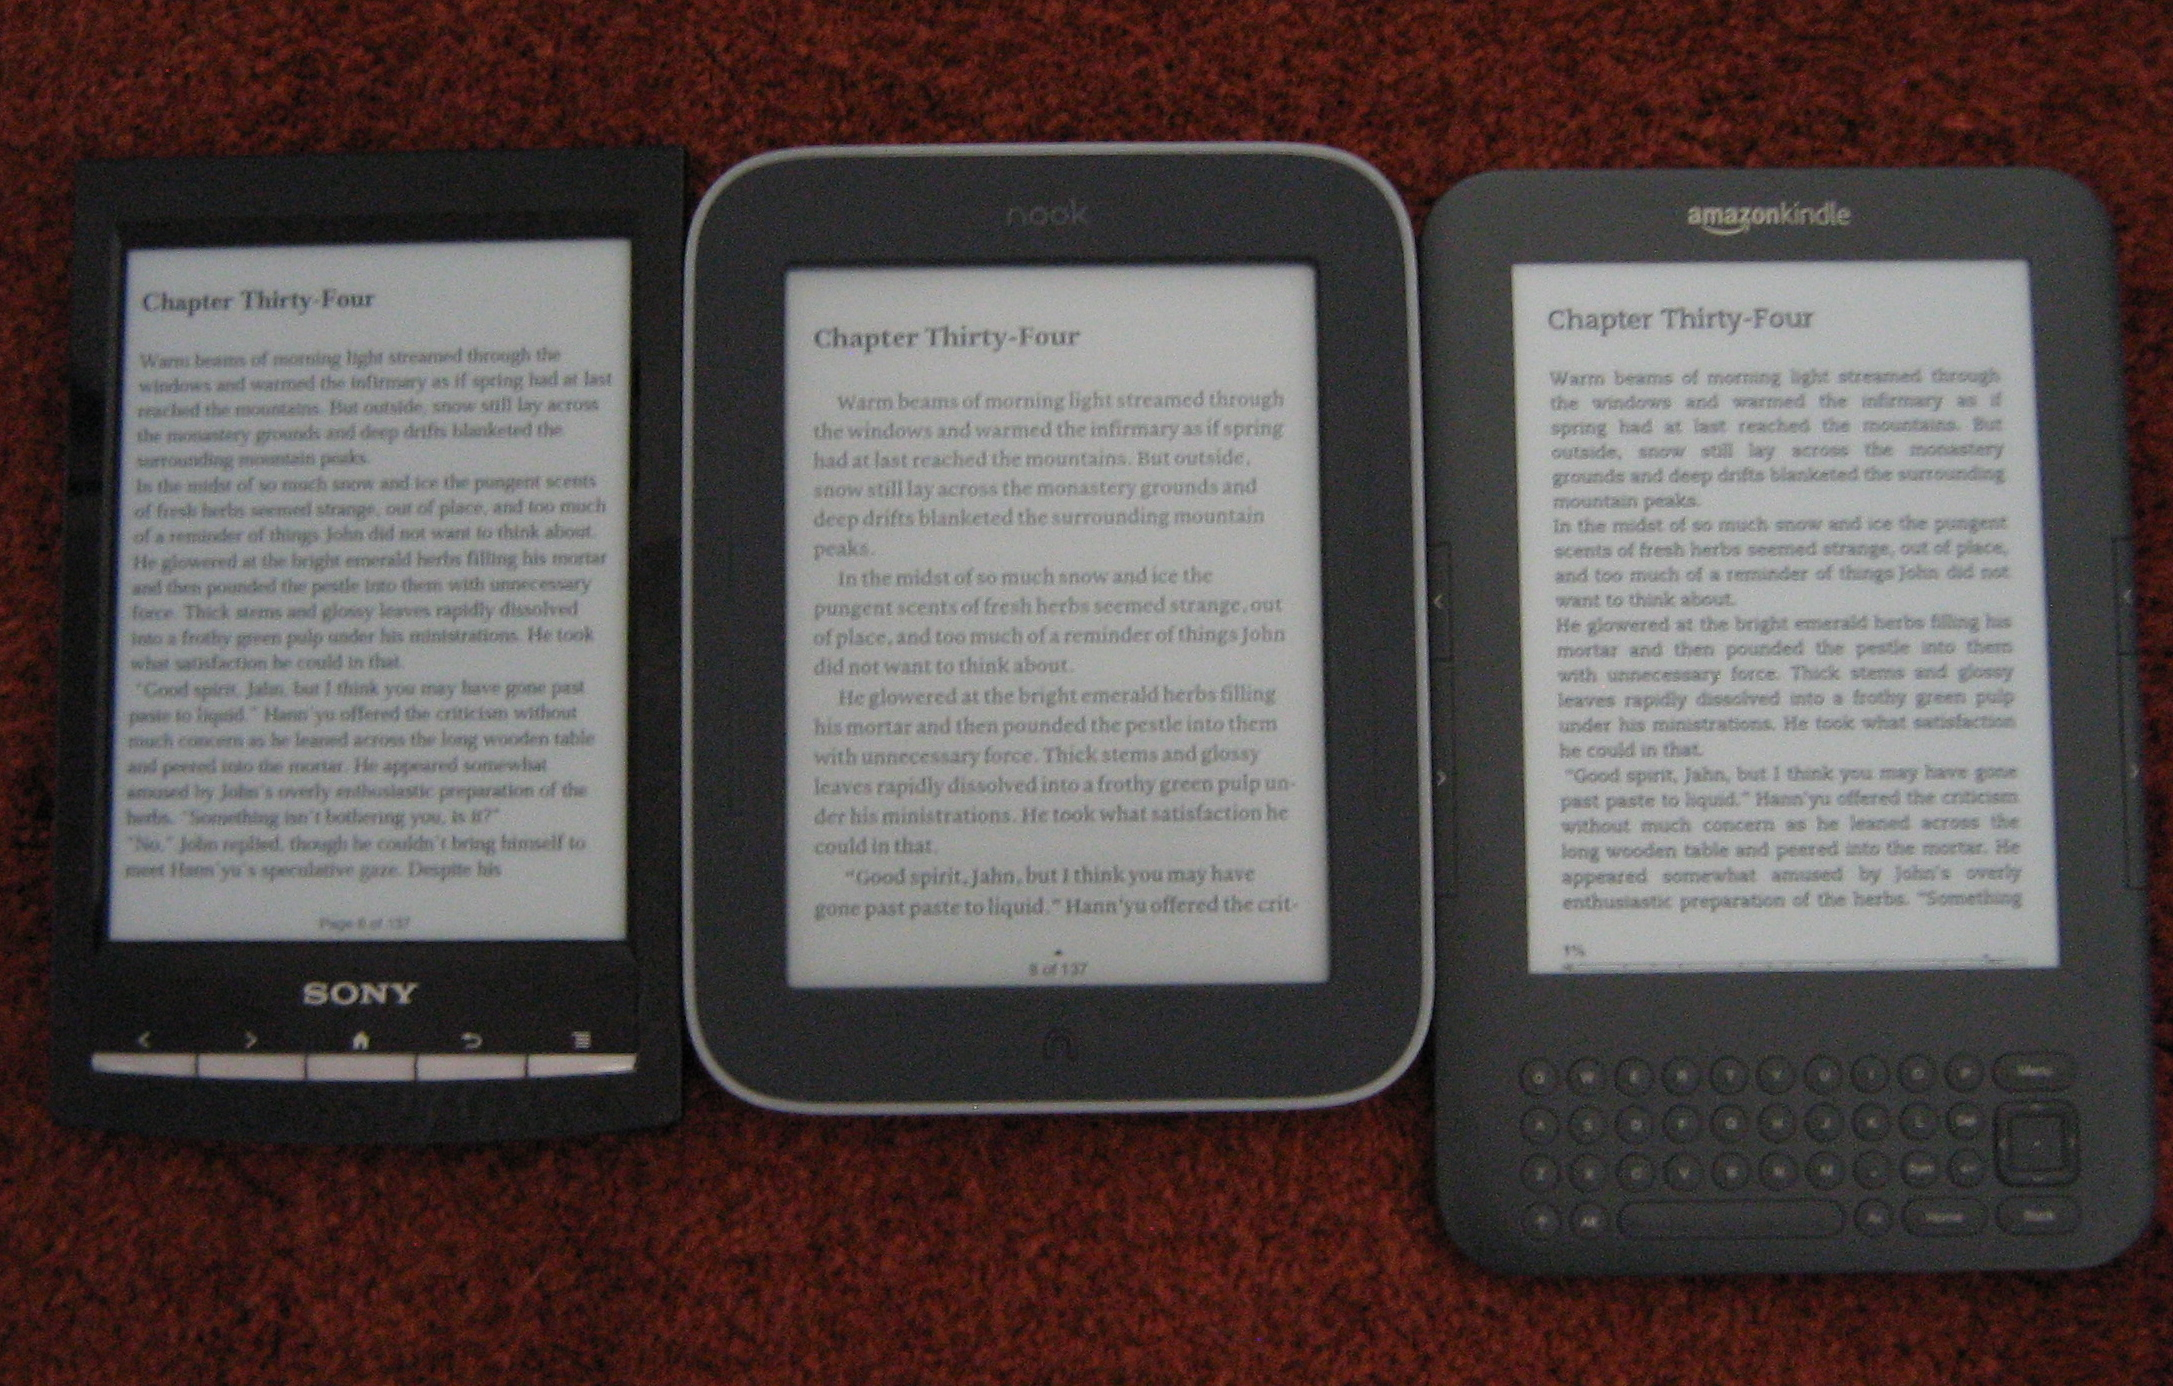 REVIEW: Nook Simple Touch With GlowLight